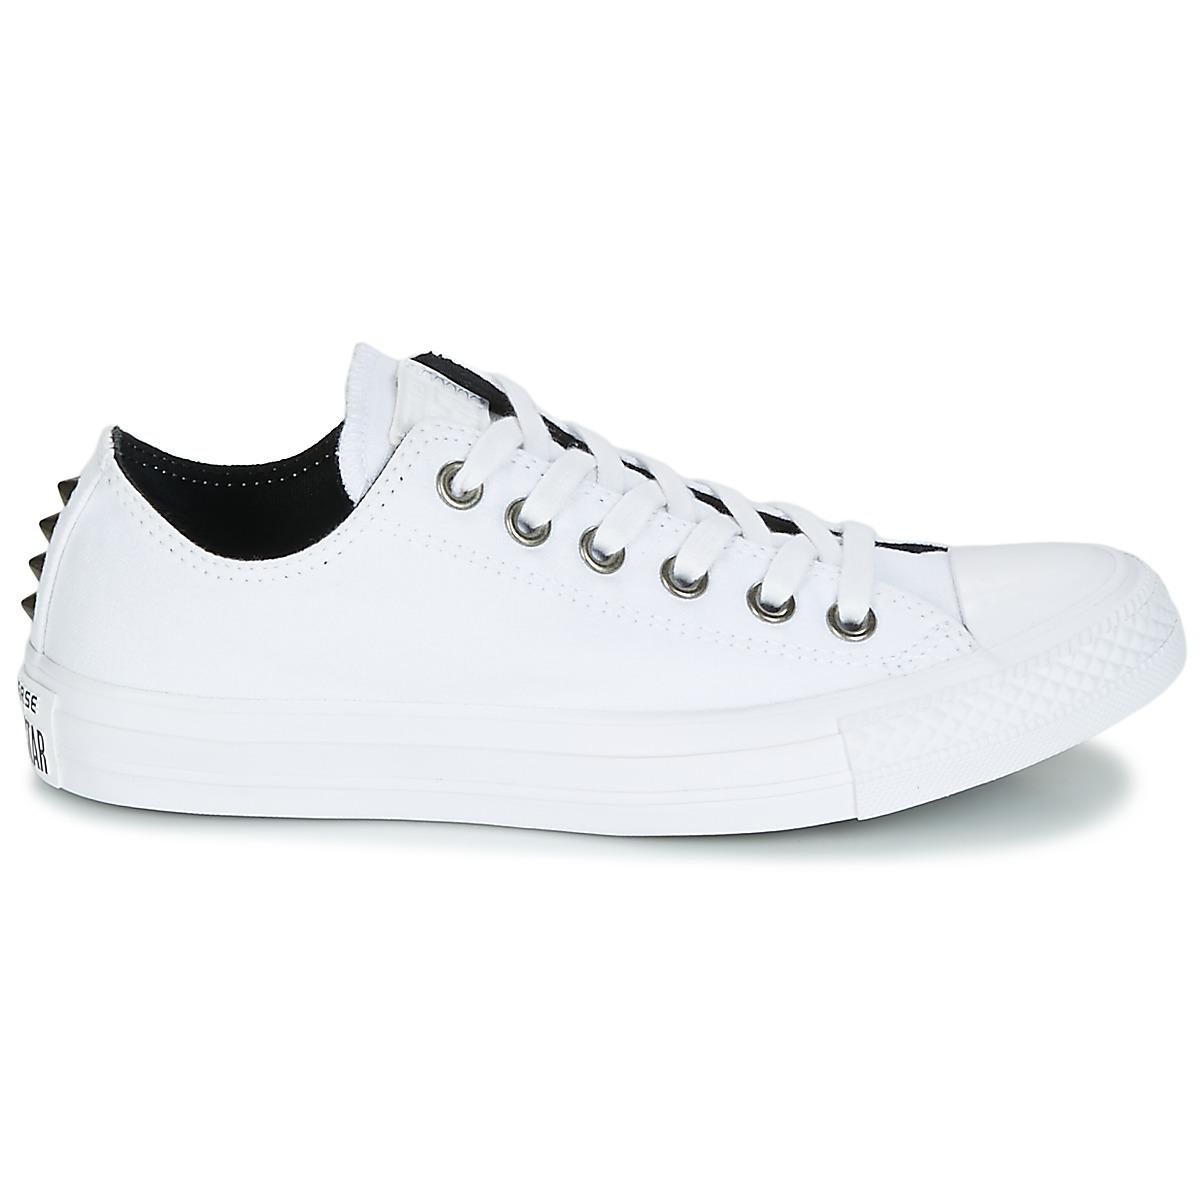 02f3e0f805a767 Converse Chuck Taylor All Star Ox Canvas + Studs Women s Shoes ...